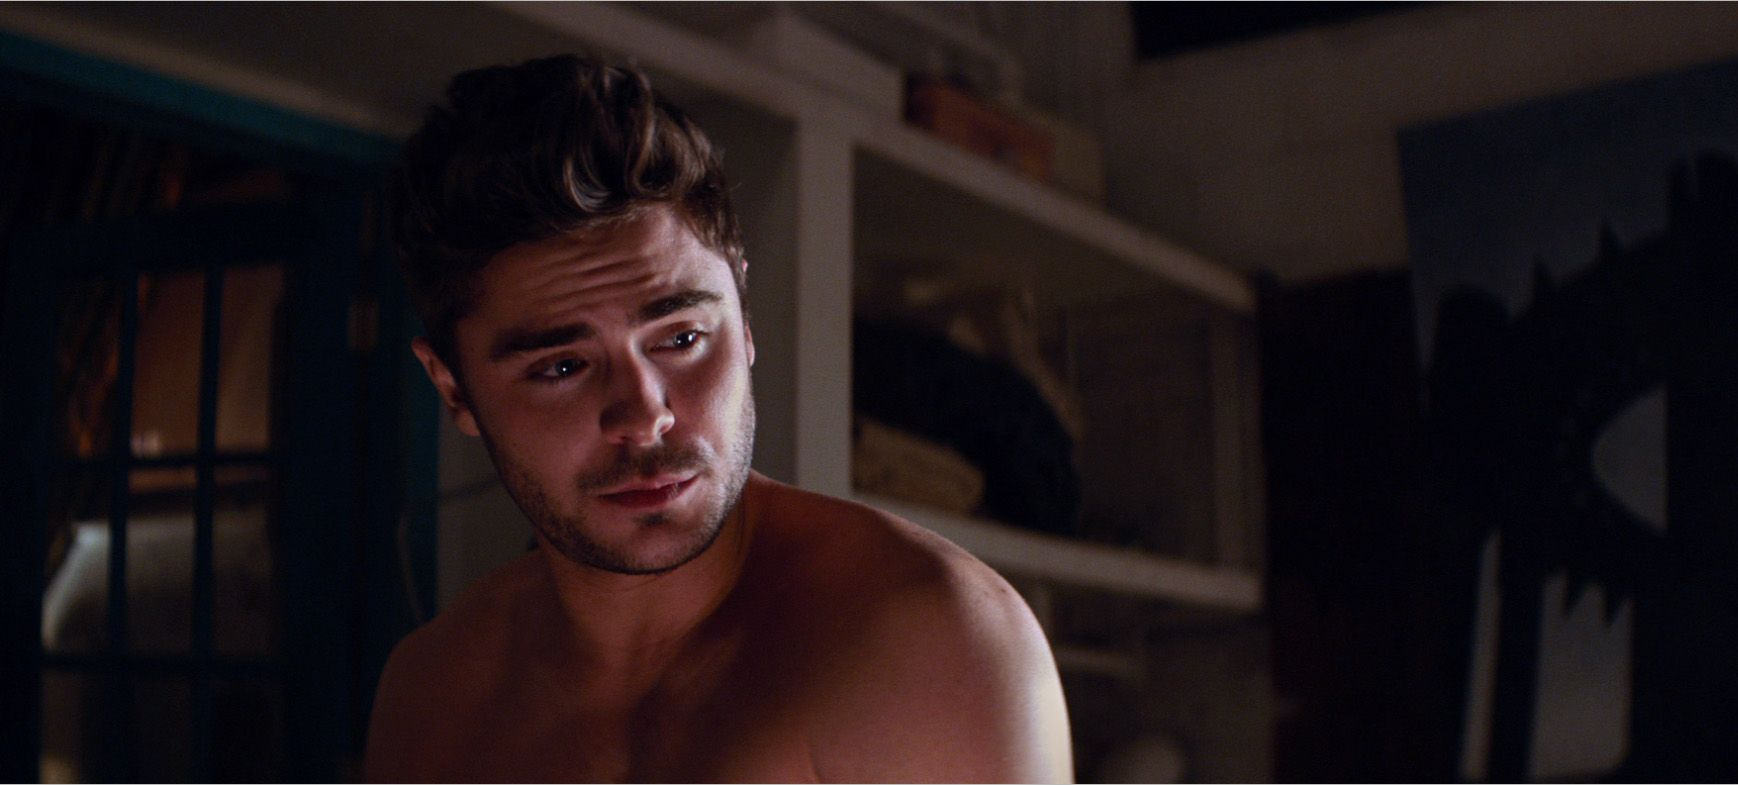 Are We Officially Dating Starring Zac Efron - Movie Auditions for